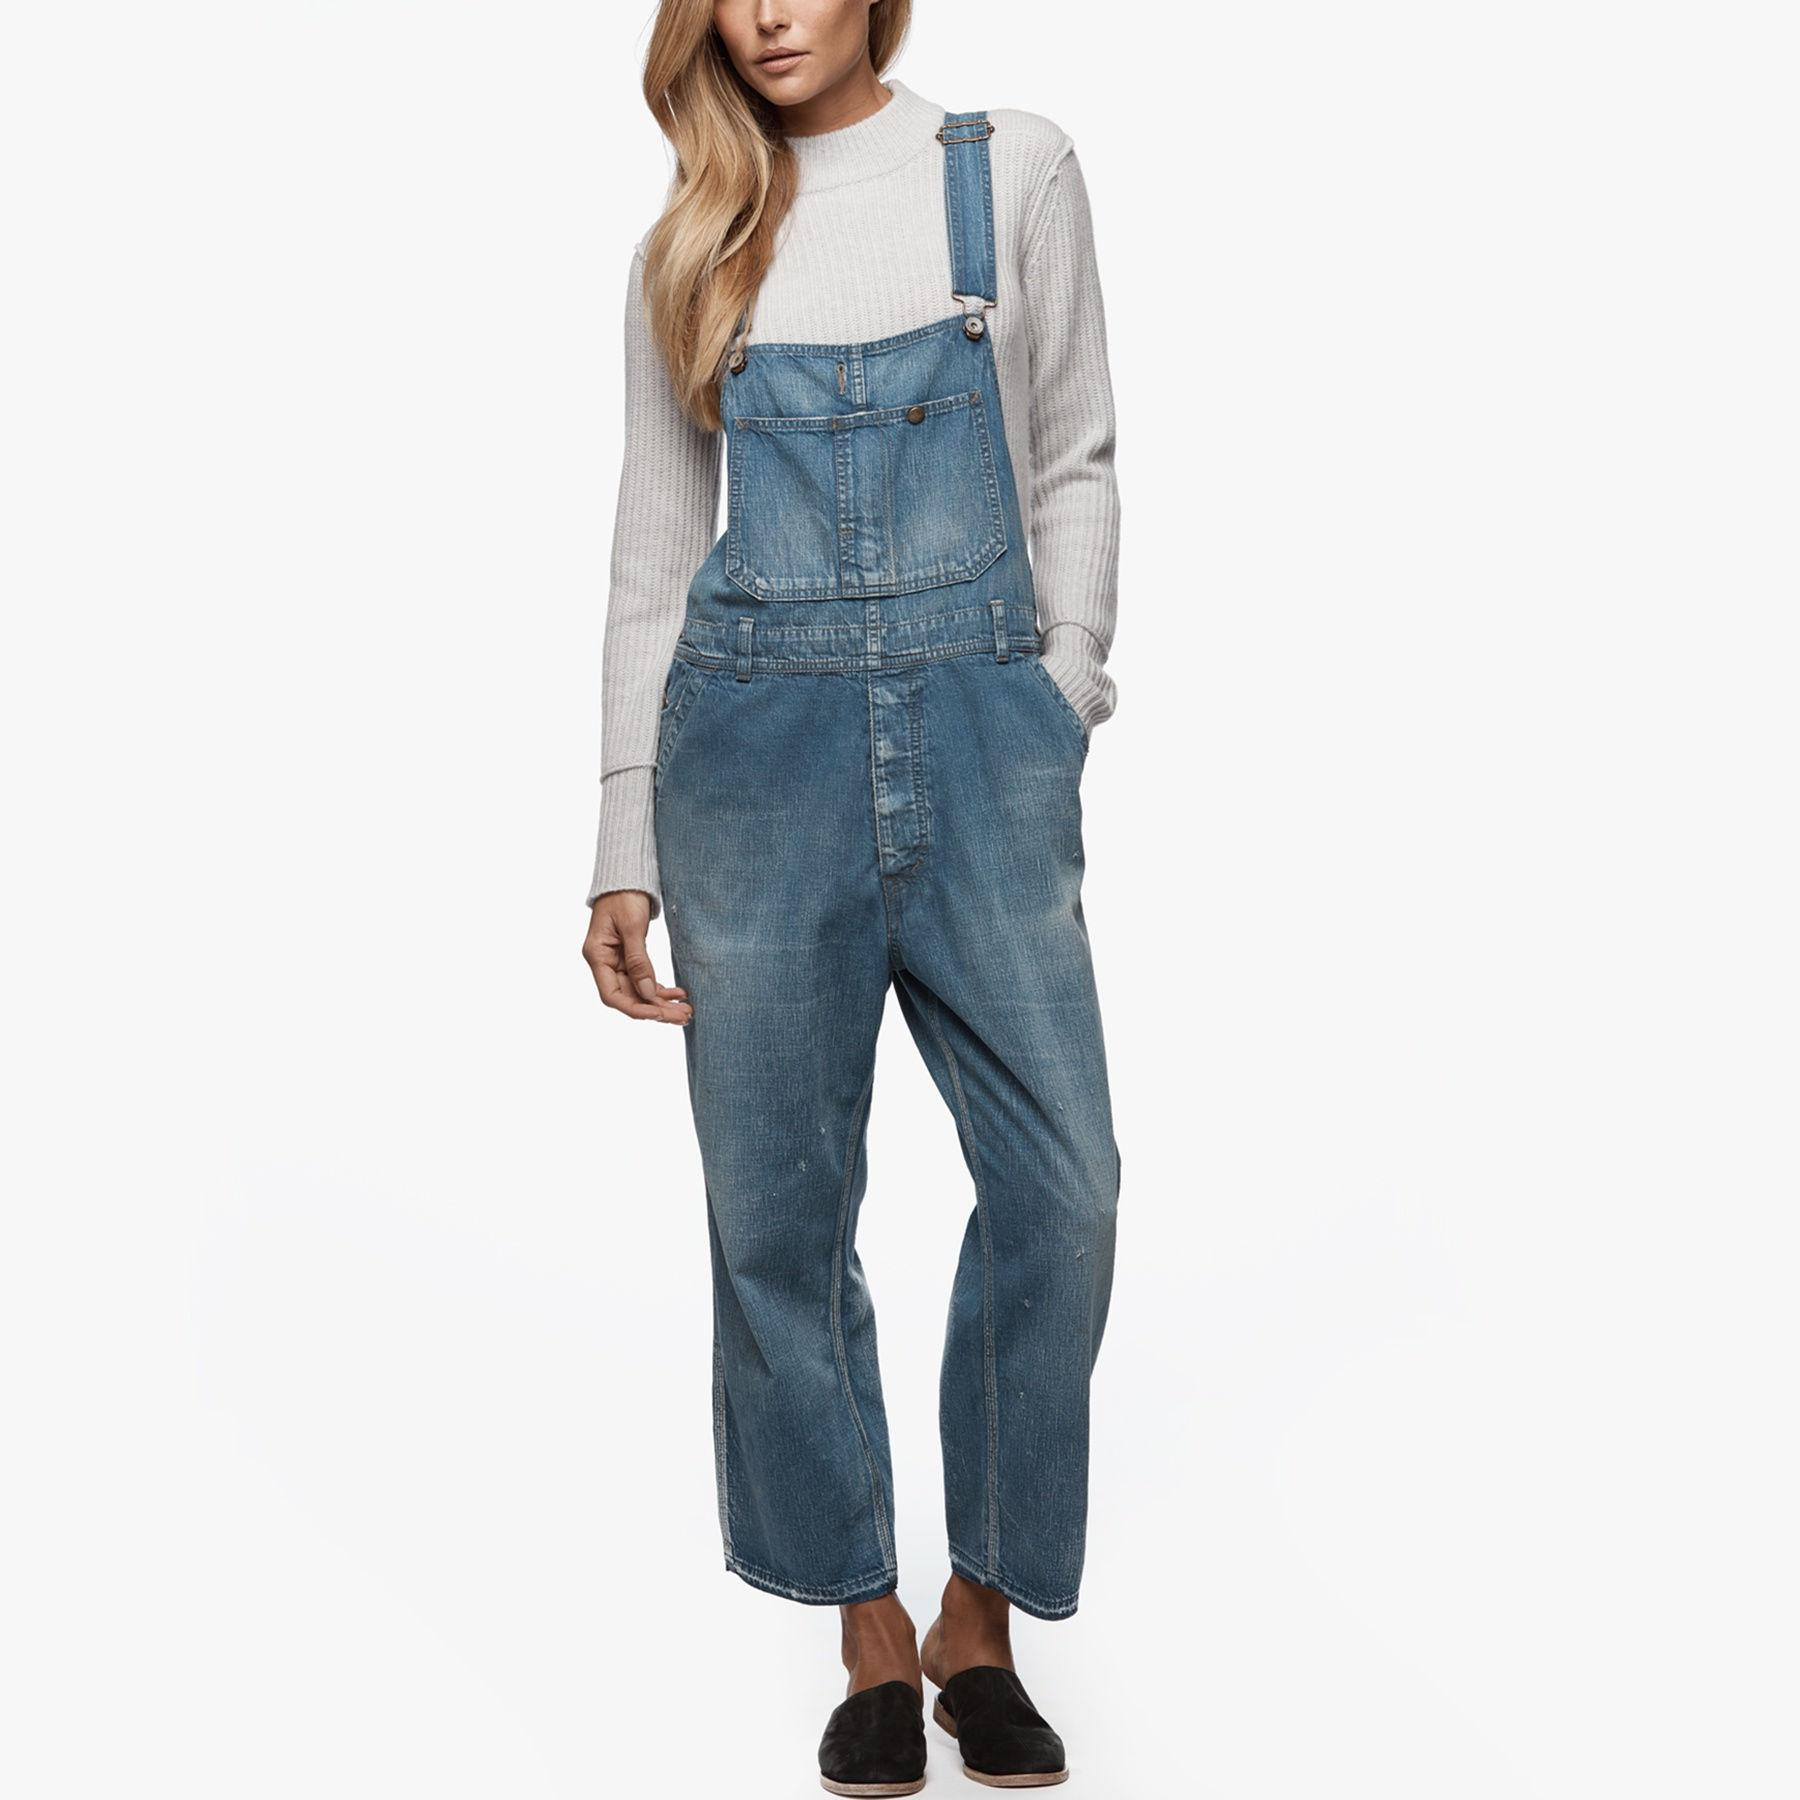 884526fee52 Gallery. Women s Denim Overalls Women s Denim Jumpsuits ...